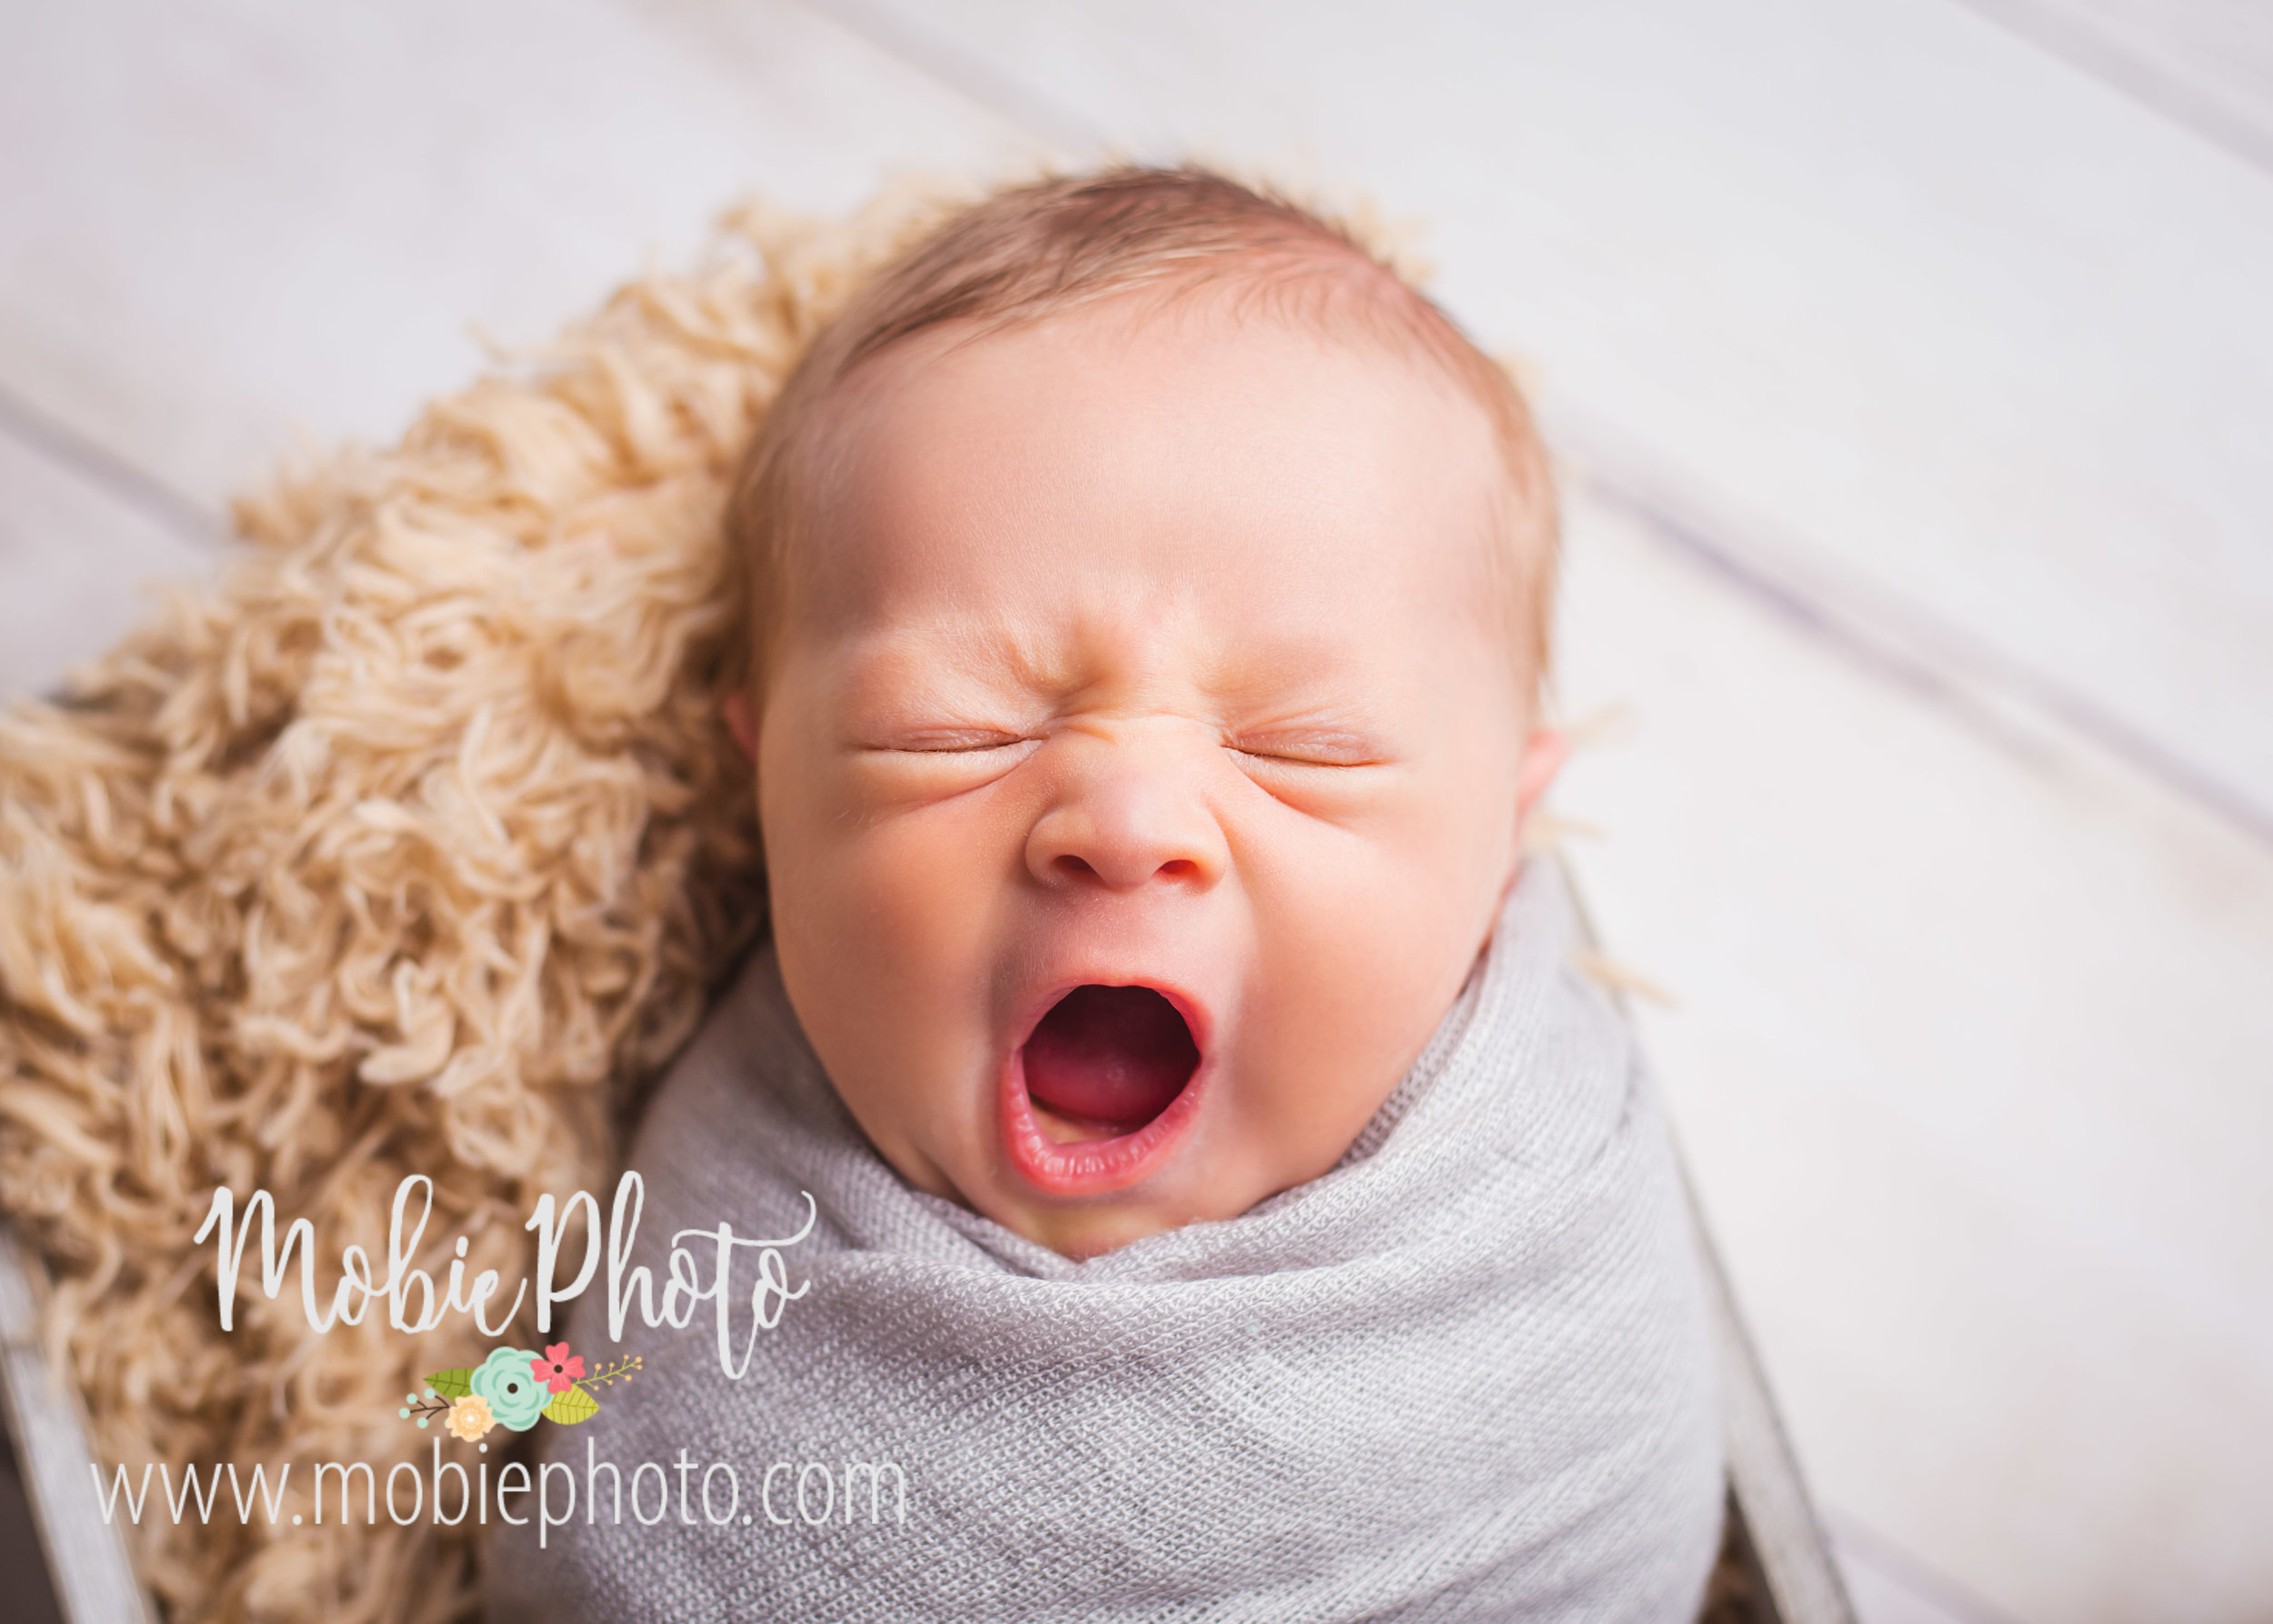 Mobie Photo - Utah Professional Newborn Photographer